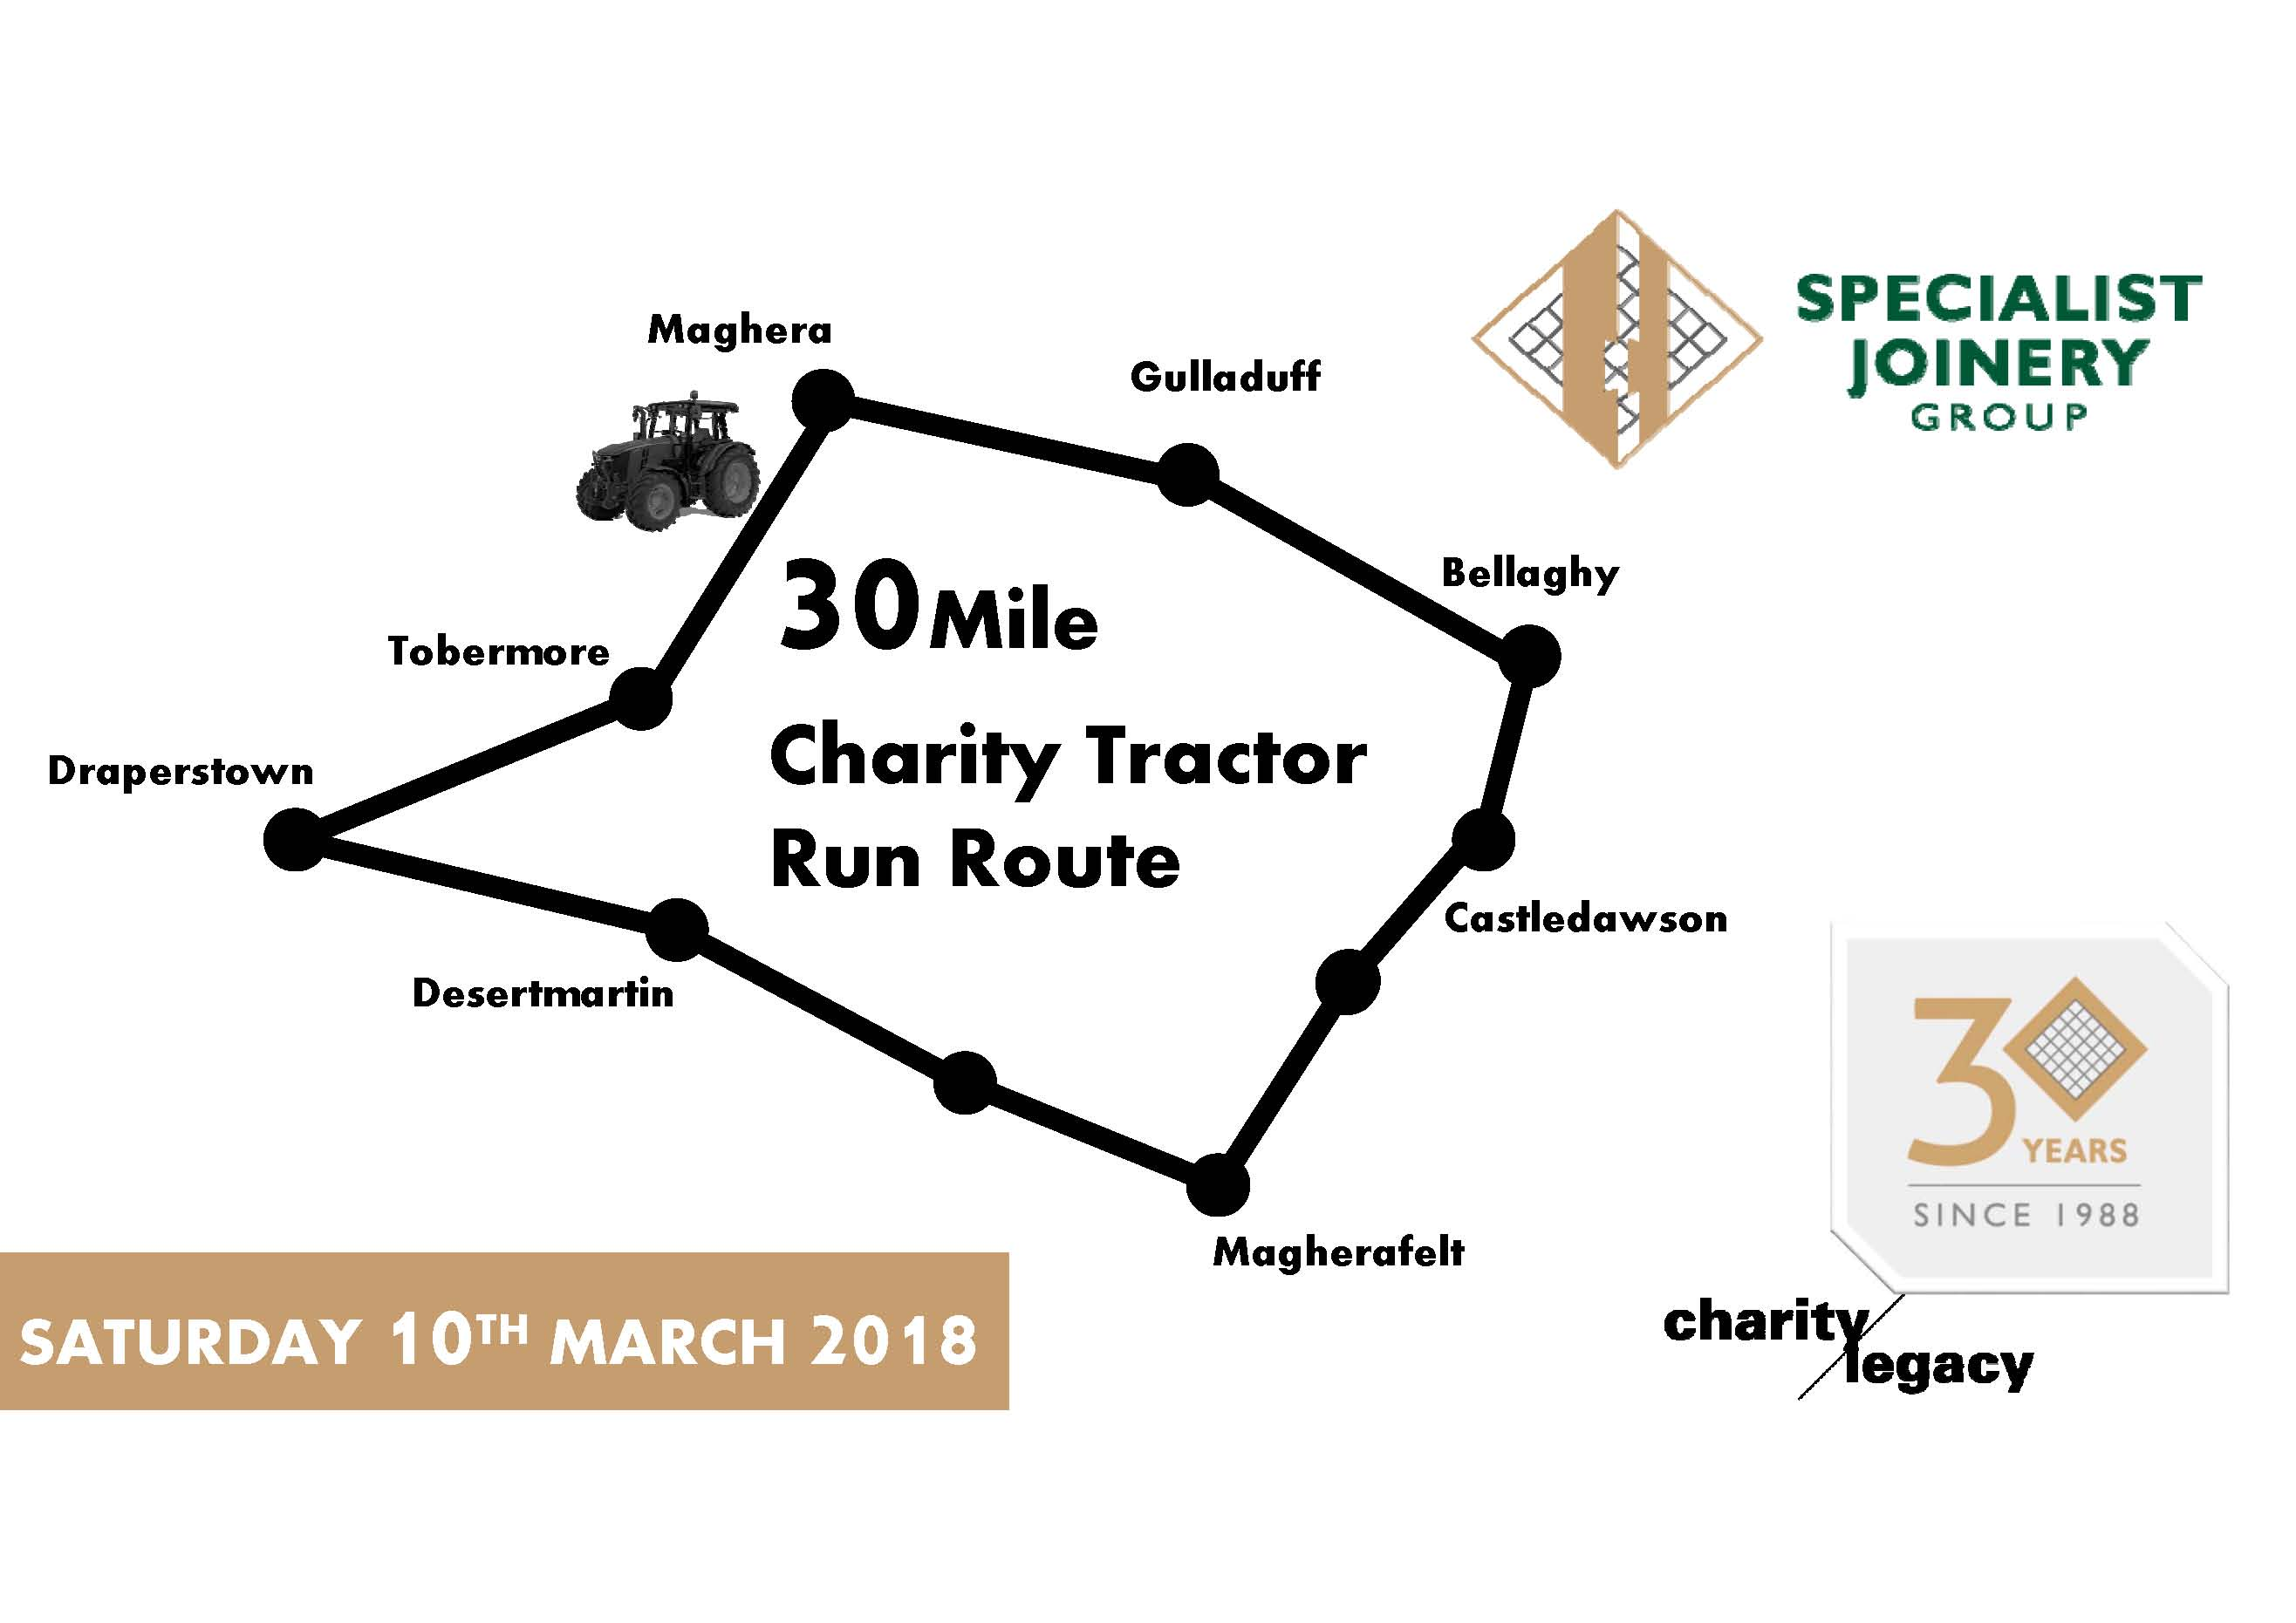 Specialist's Charity Tractor Run Event Route